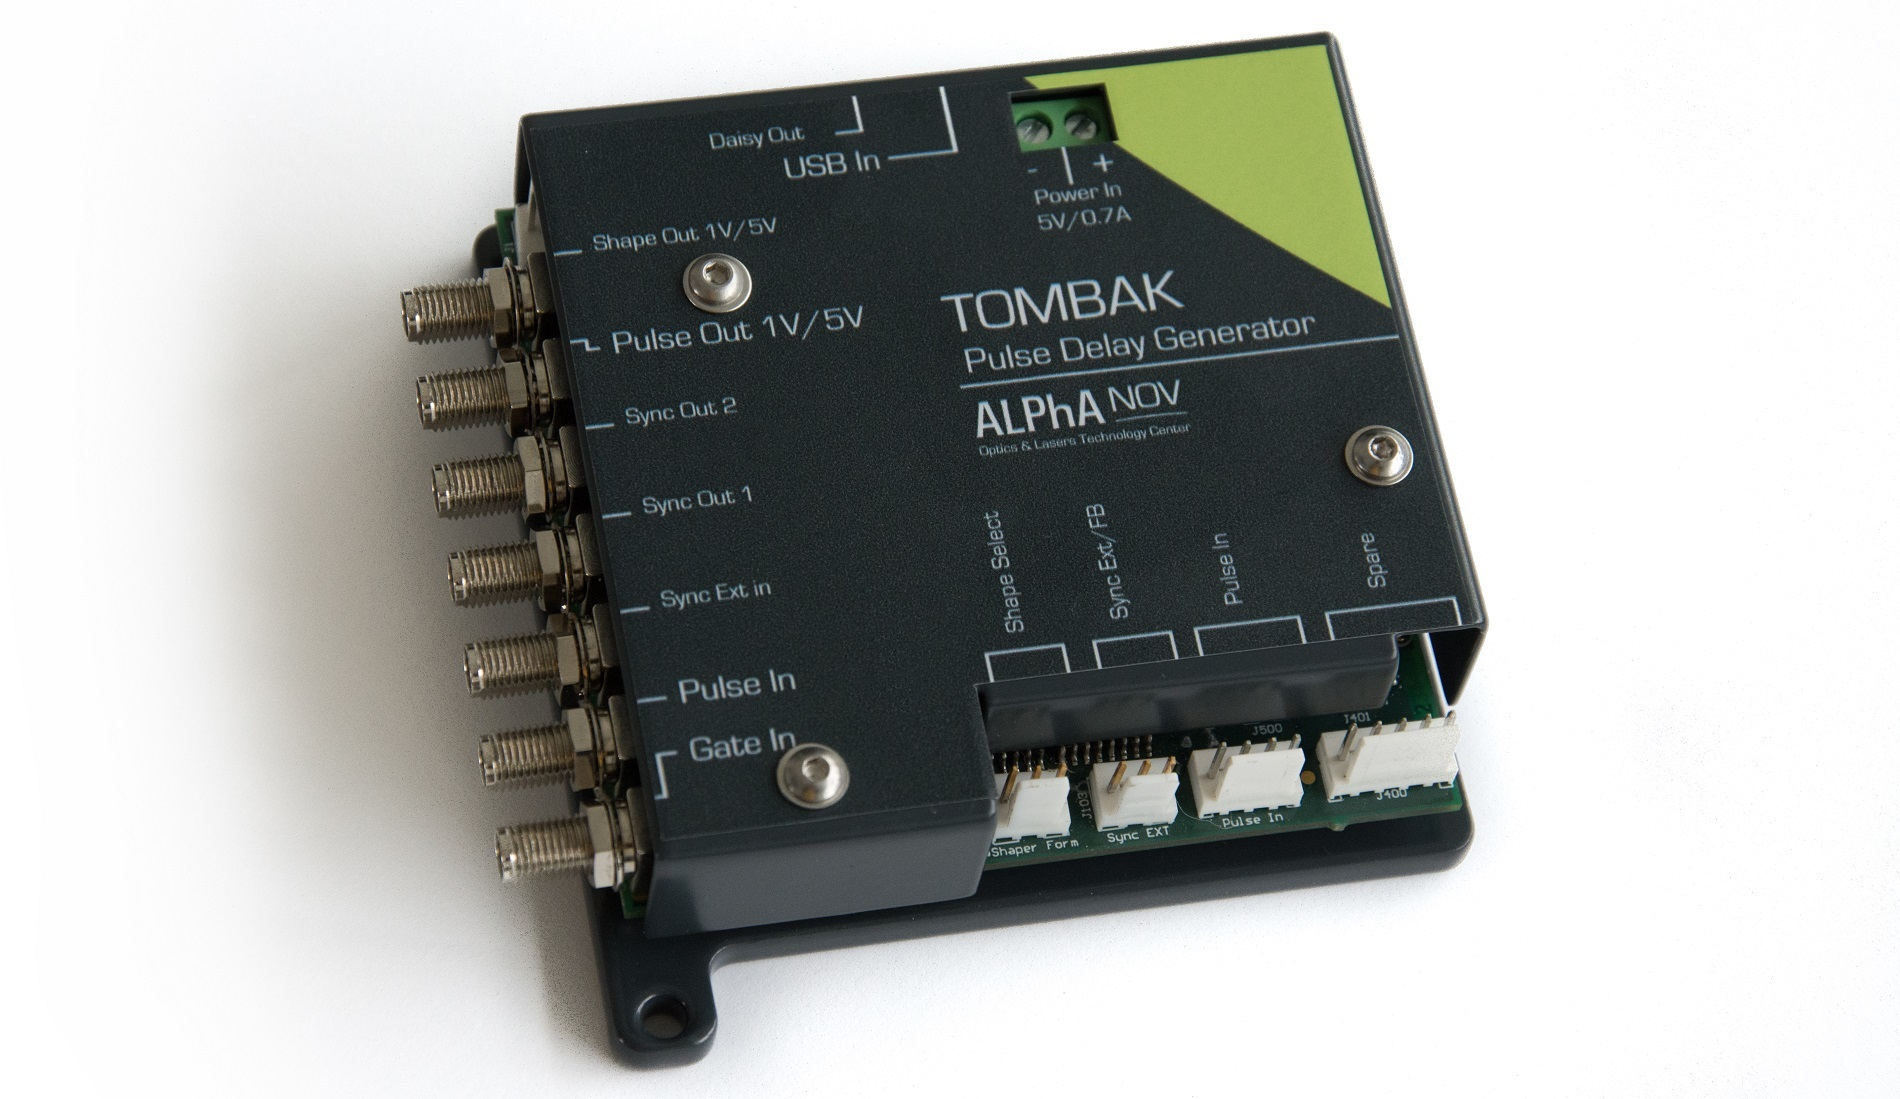 TOMBAK - Pulse Delay Generator